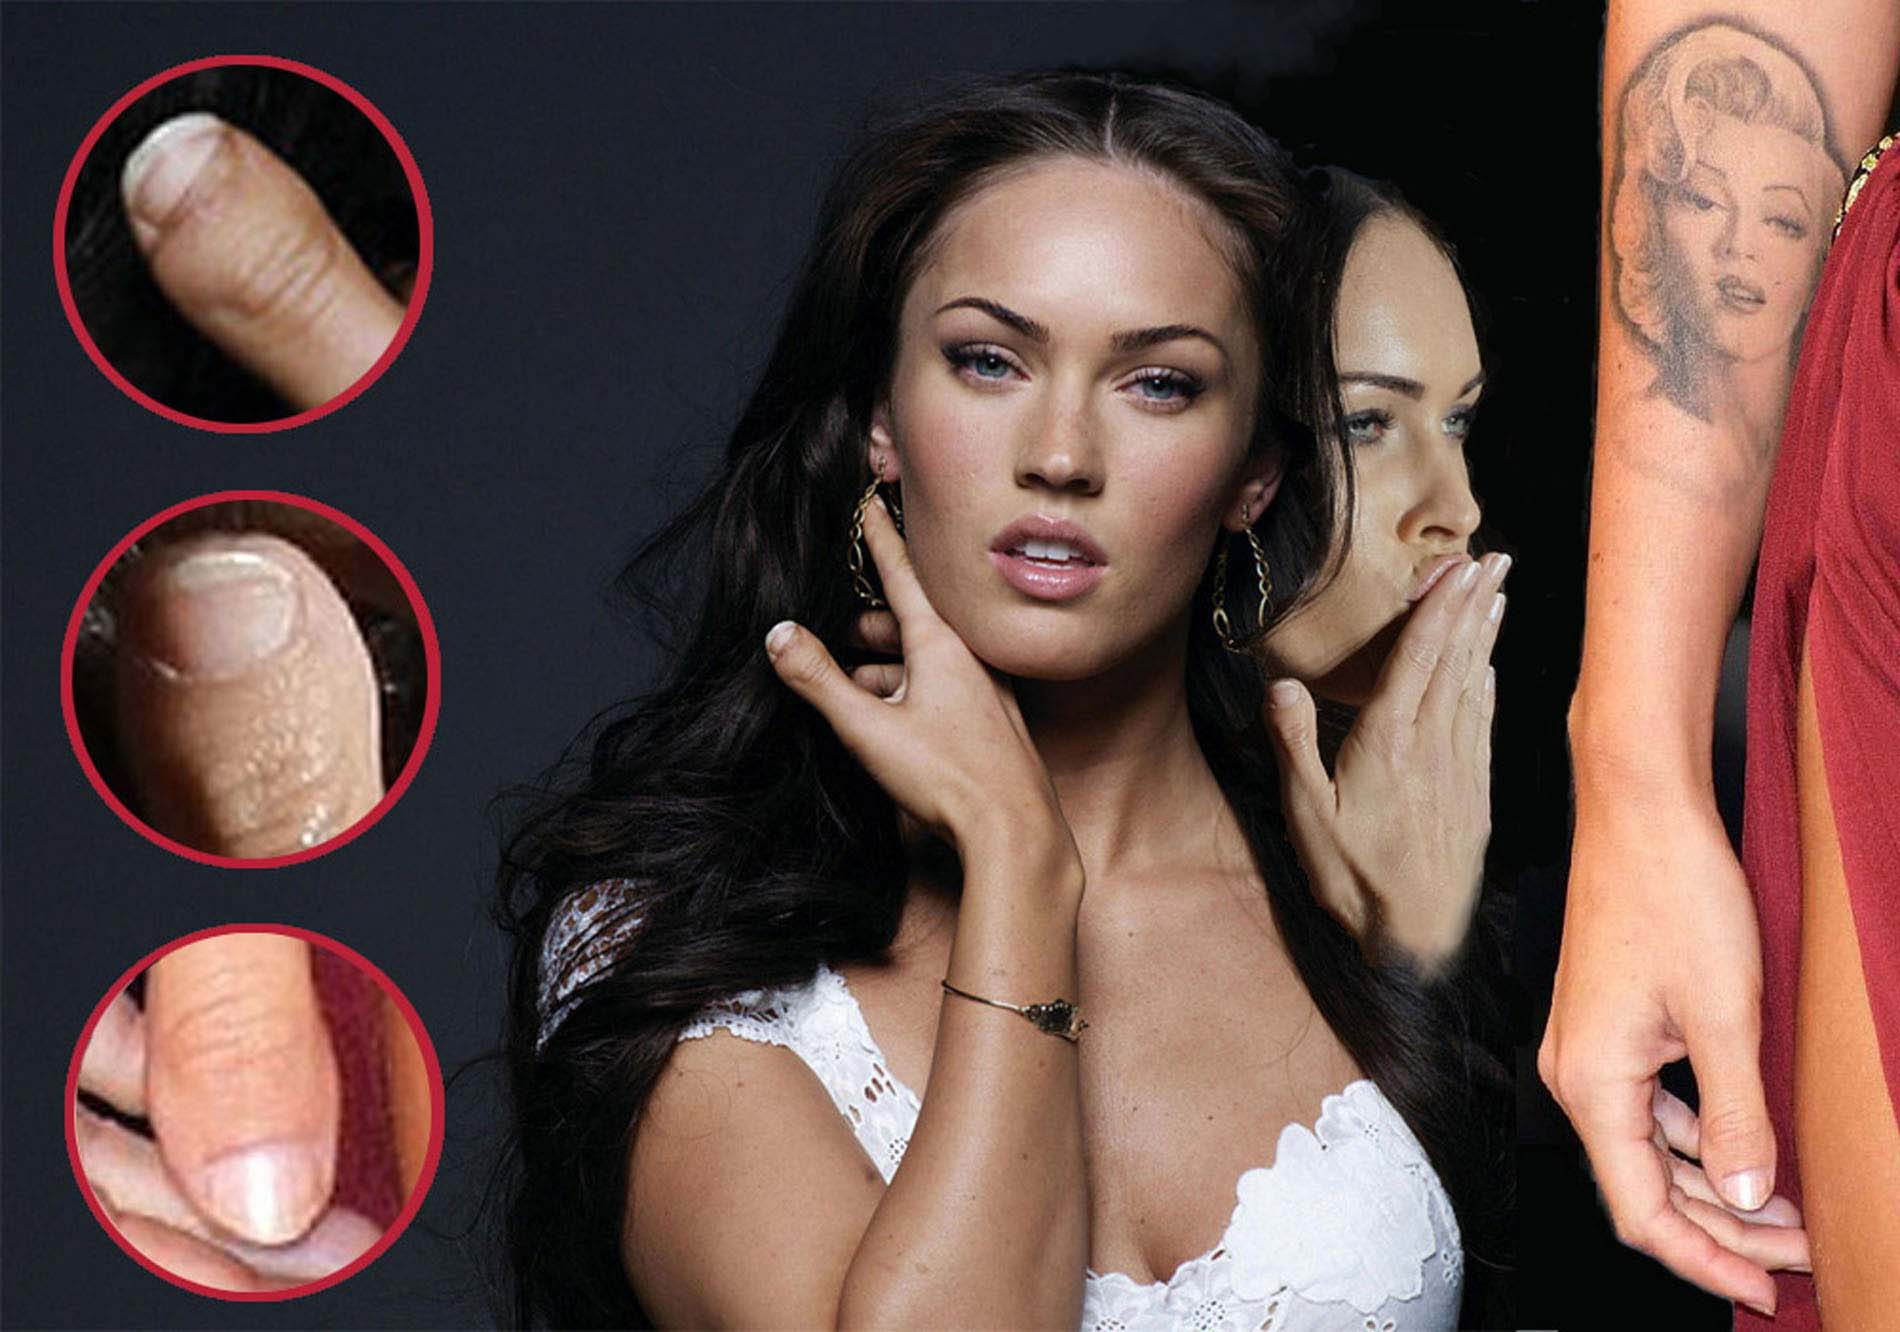 201507131216_megan-fox-thumb-tribute.jpg